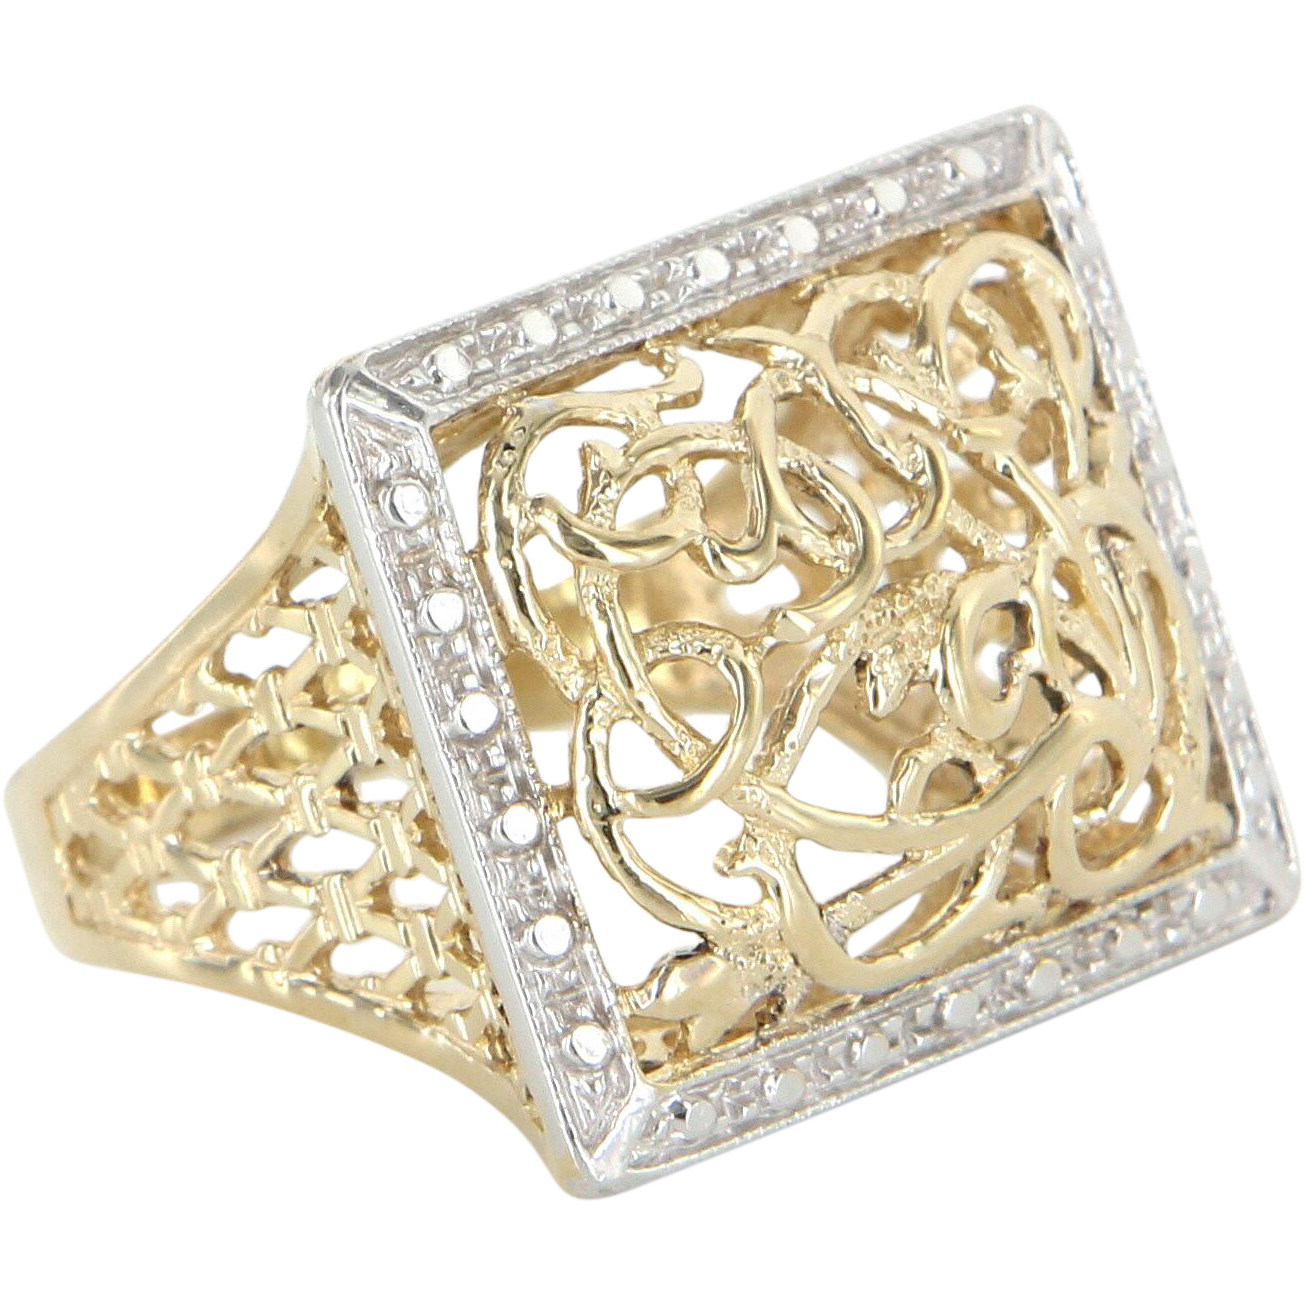 Square Filigree Cocktail Ring Vintage 14 Karat Yellow Gold Estate Jewelry Pre Owned